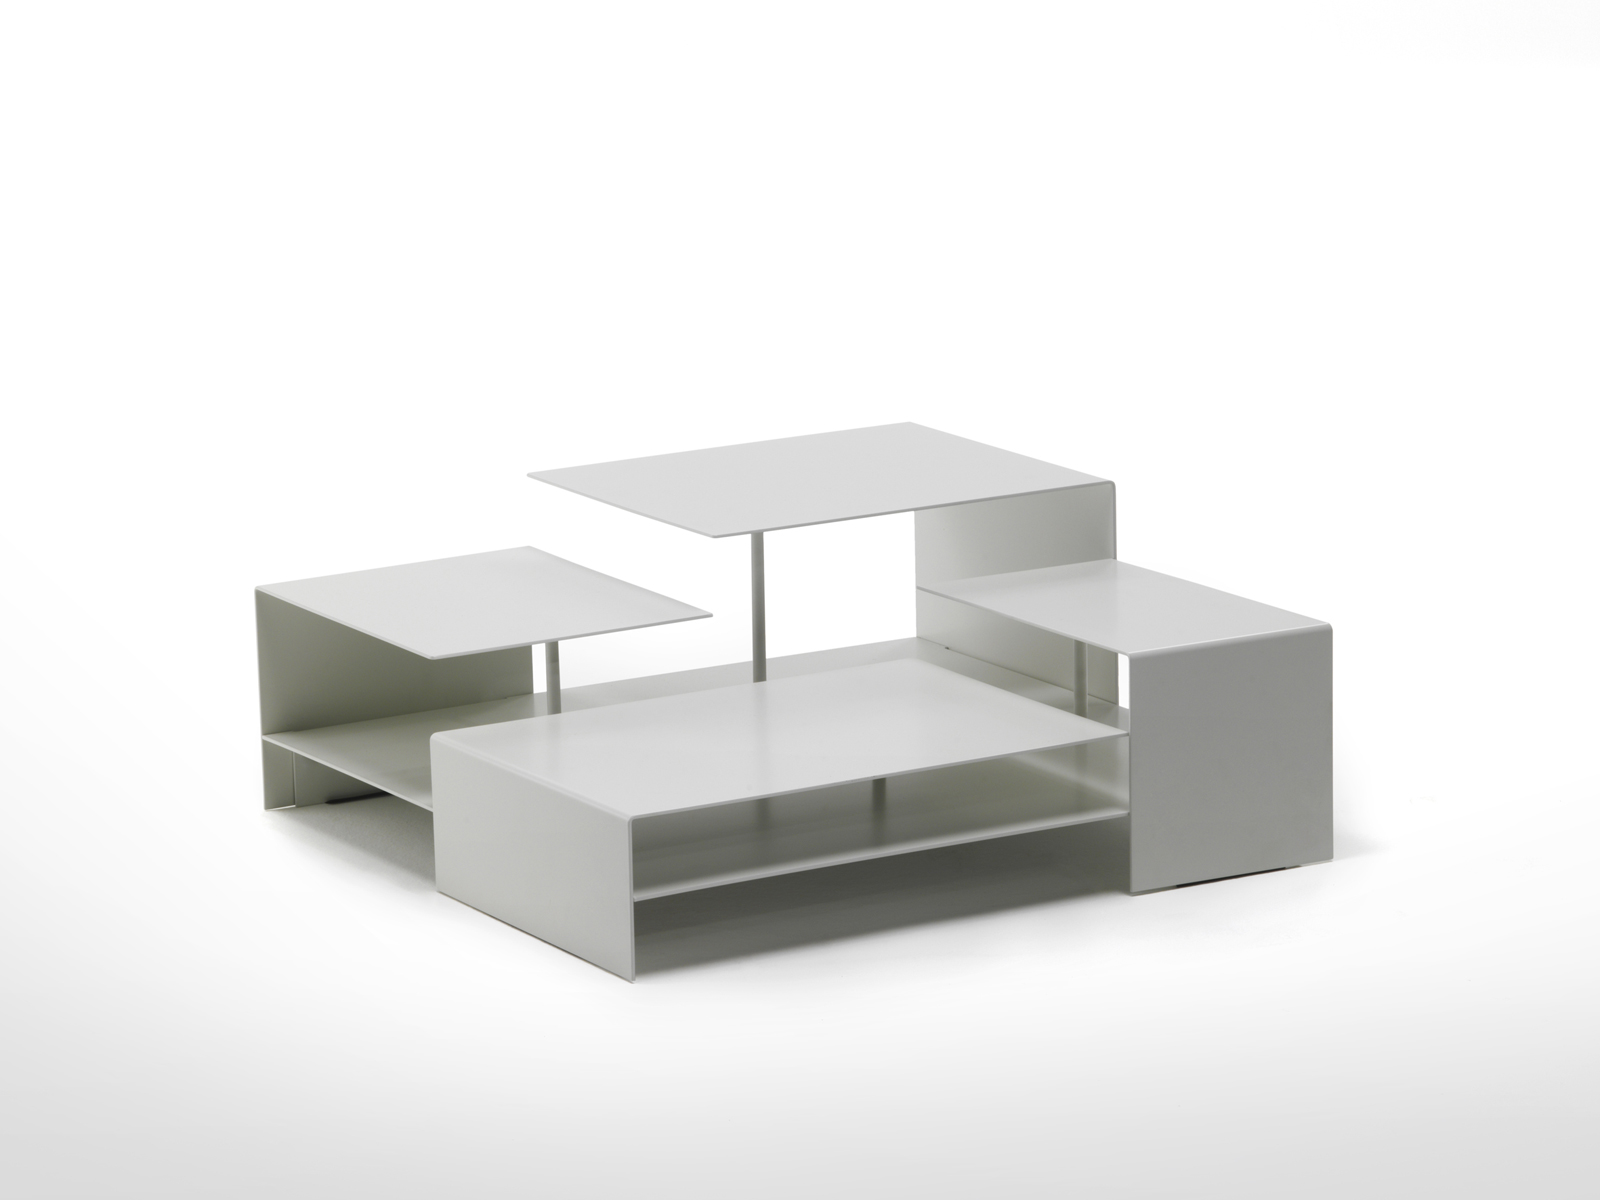 Low coffee table b2 by living divani design victor vasilev - Divani design low cost ...